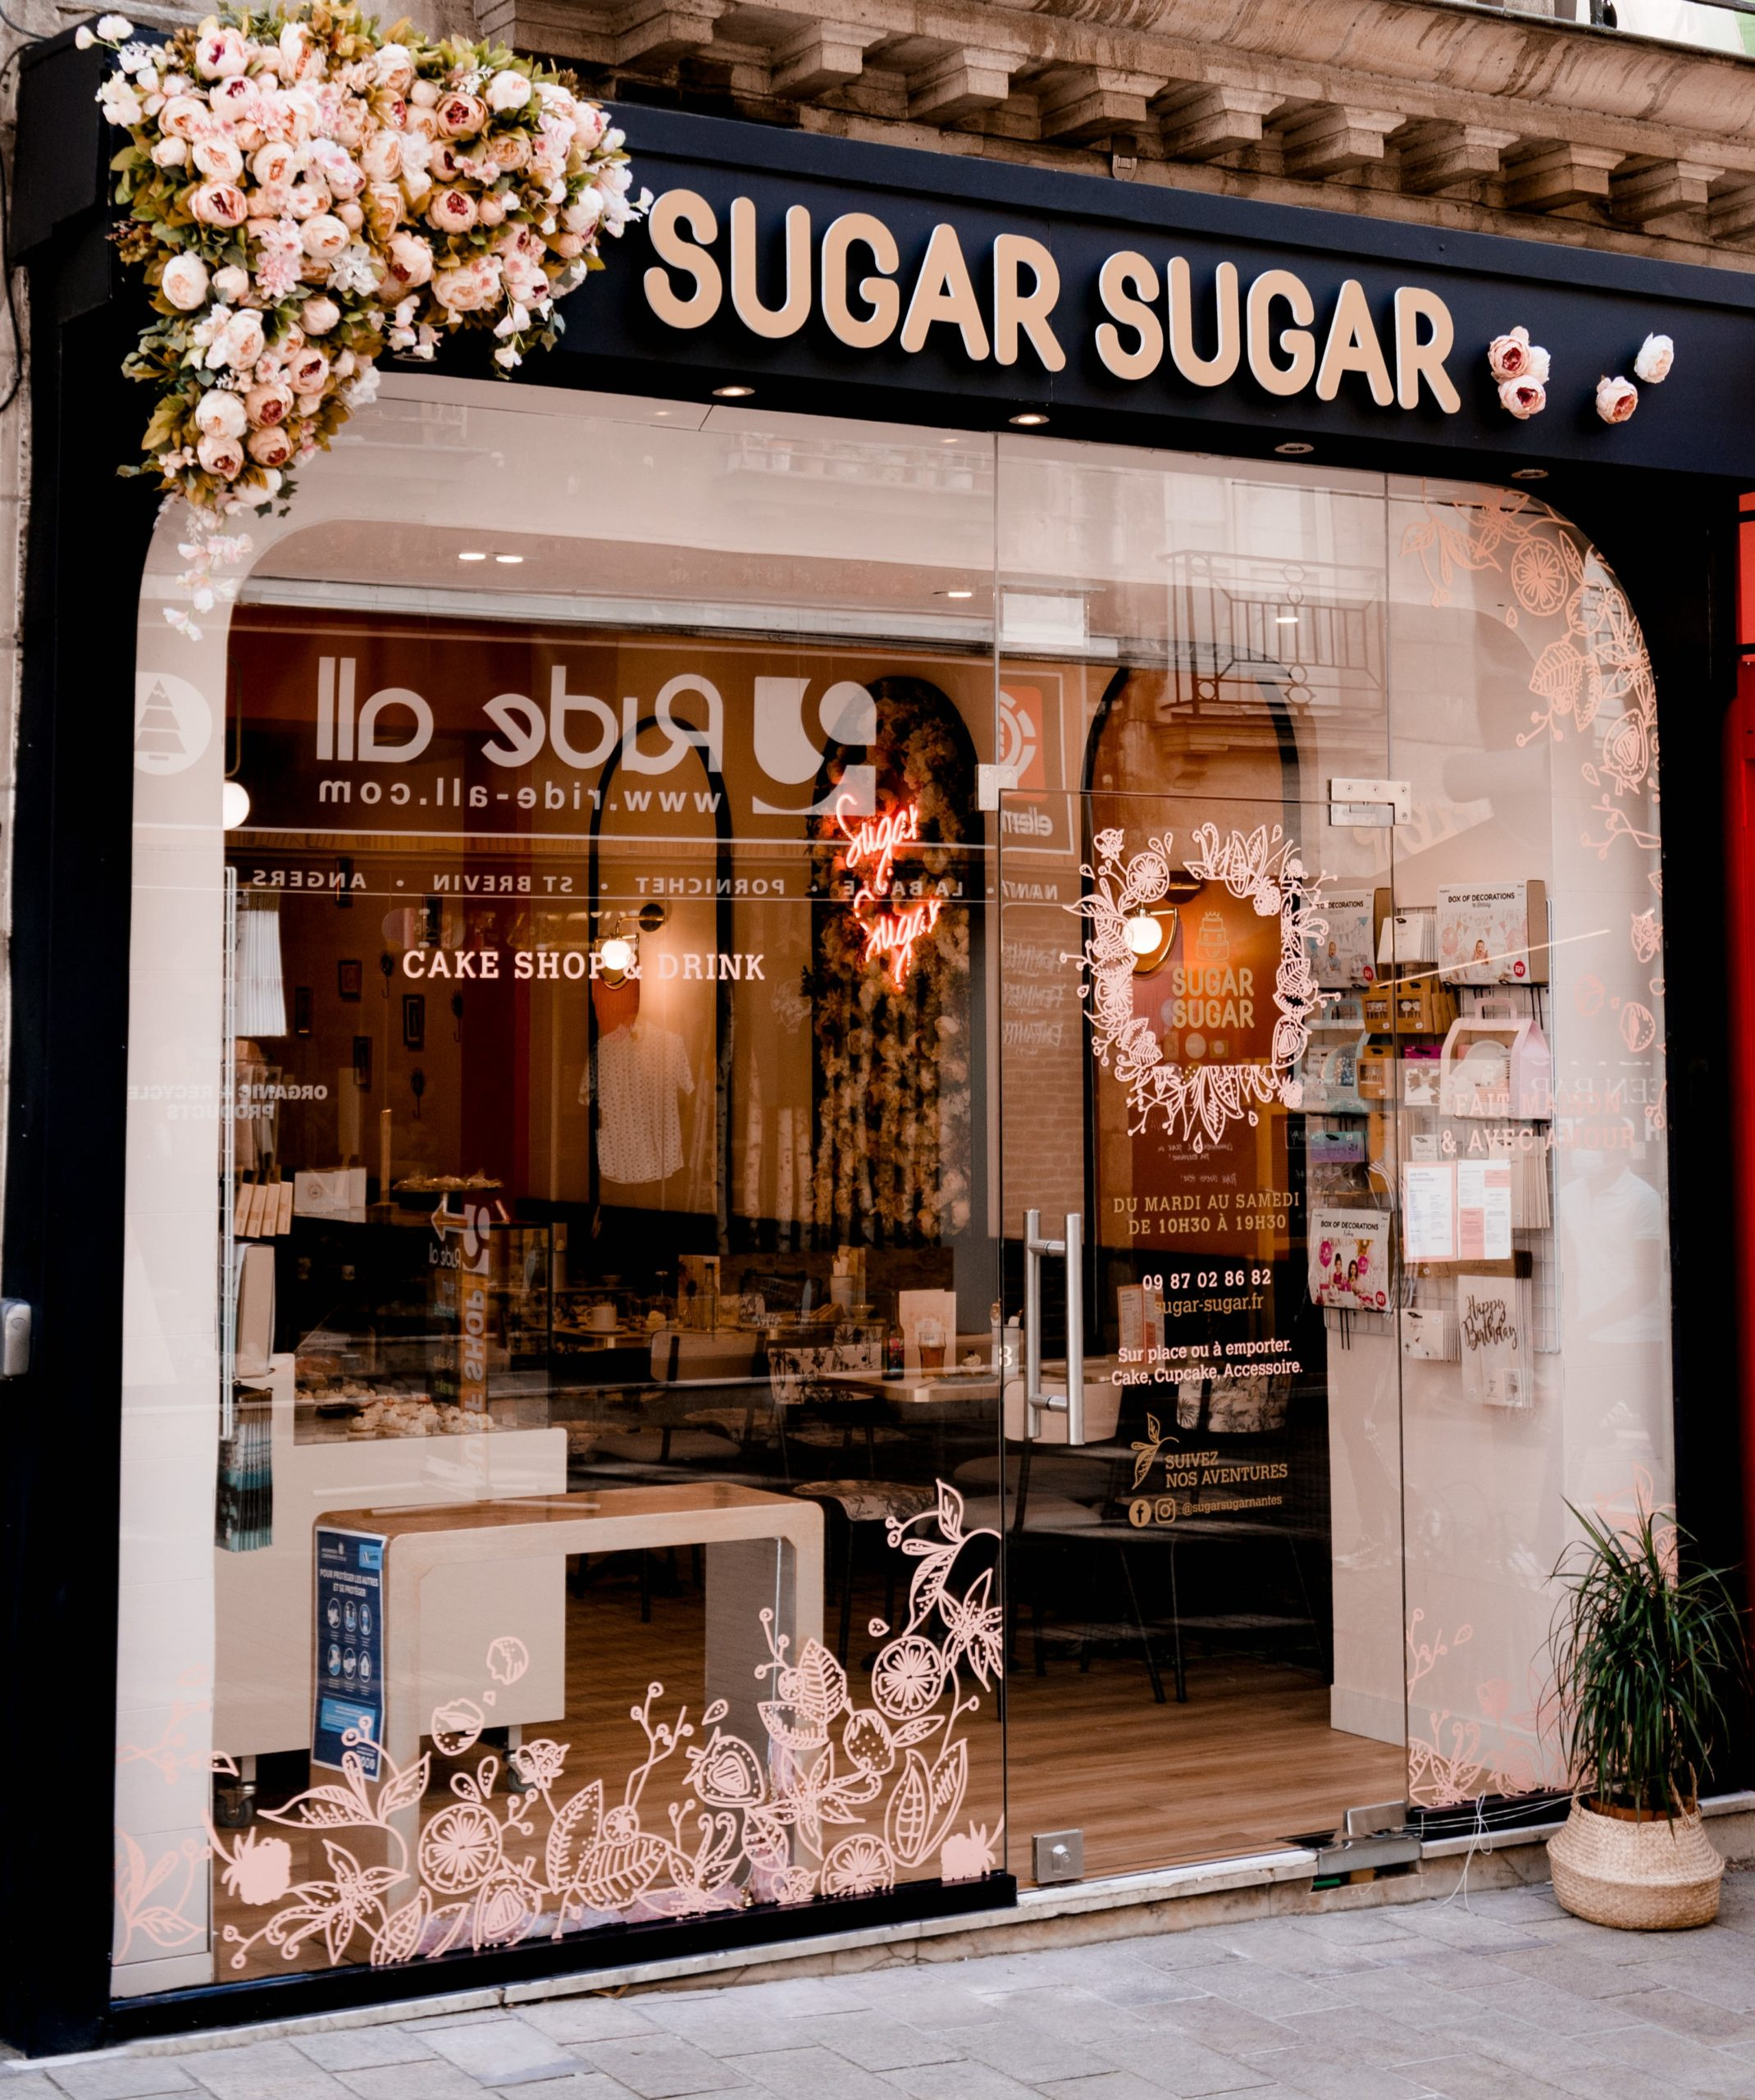 AMENAGEMENT DECORATION BOUTIQUE SALON DE THE PATISSERIE SUGAR SUGAR NANTES PAR LYDIE PINEAU KIOSQUE DECO